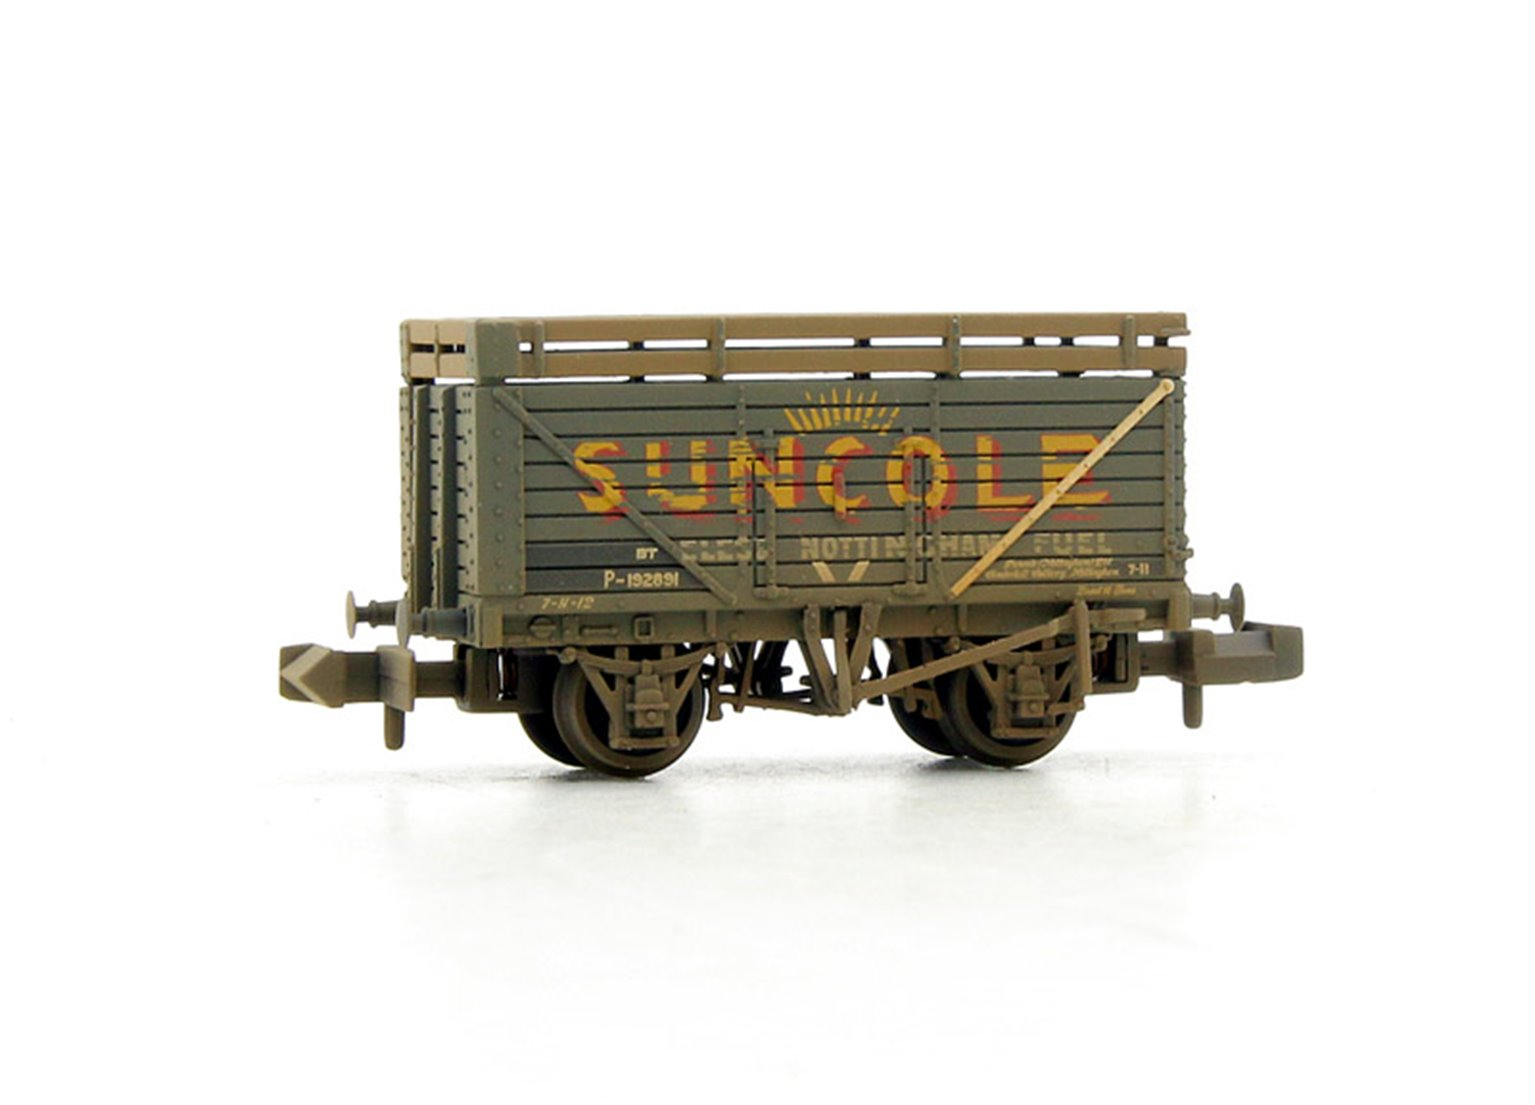 8 Plank Wagon with Coke Rails 'Suncole' (P Number) - Weathered